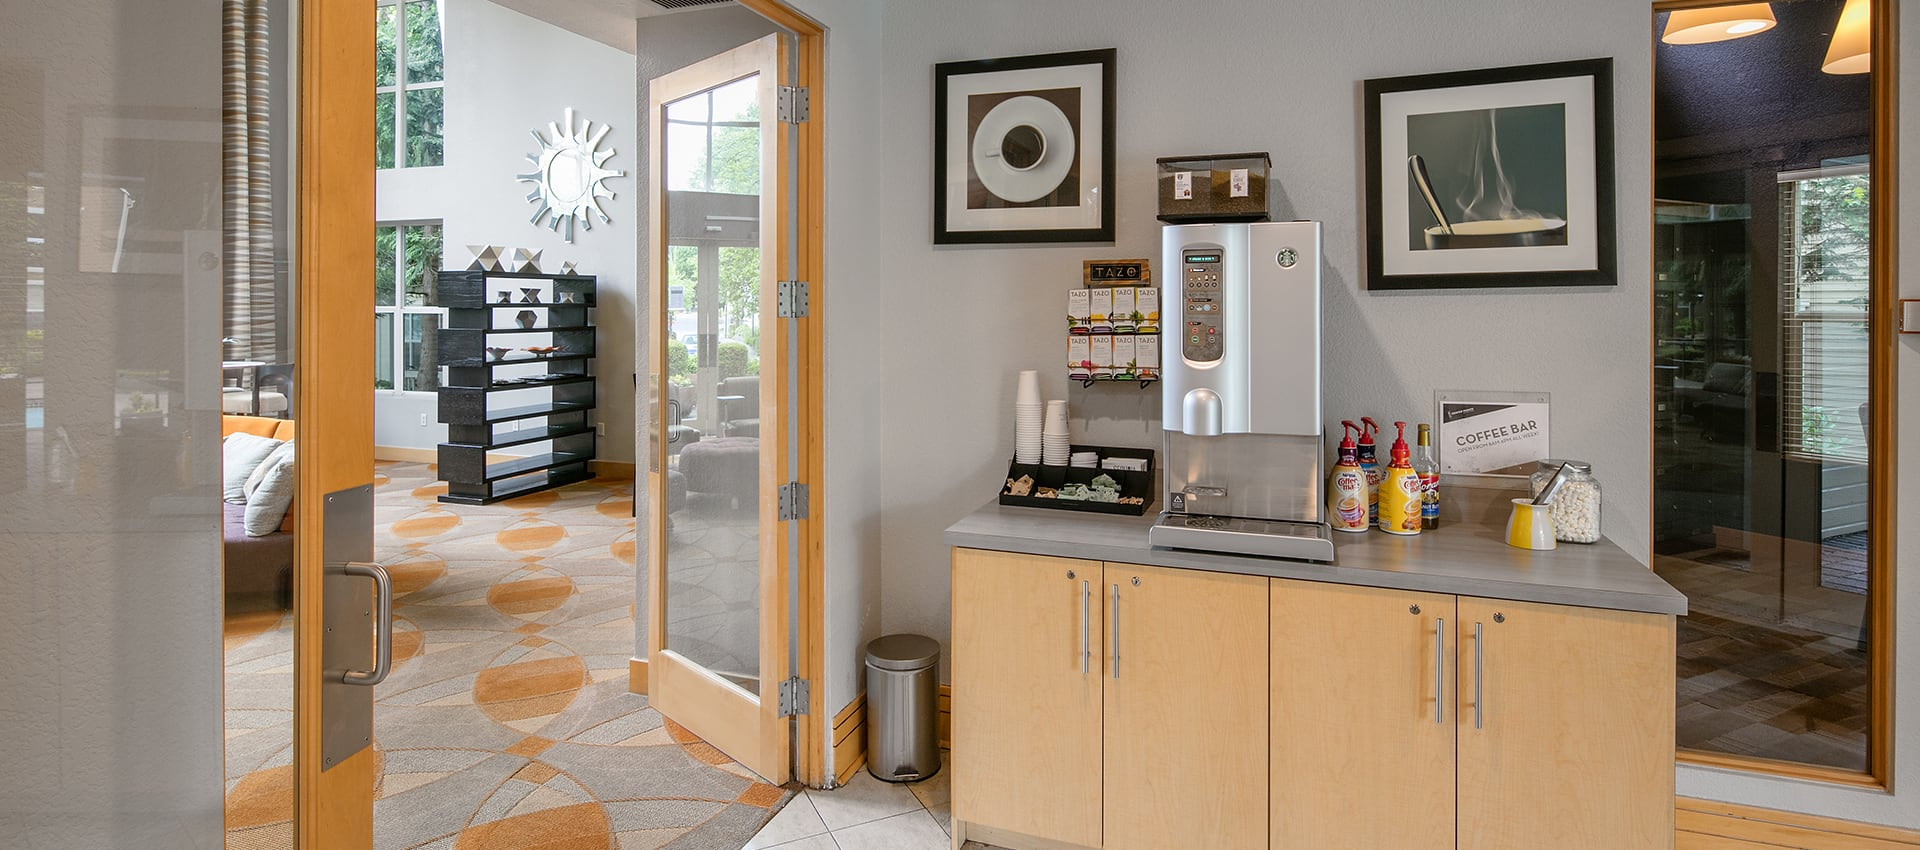 Coffee lounge at Center Pointe Apartment Homes in Beaverton, Oregon